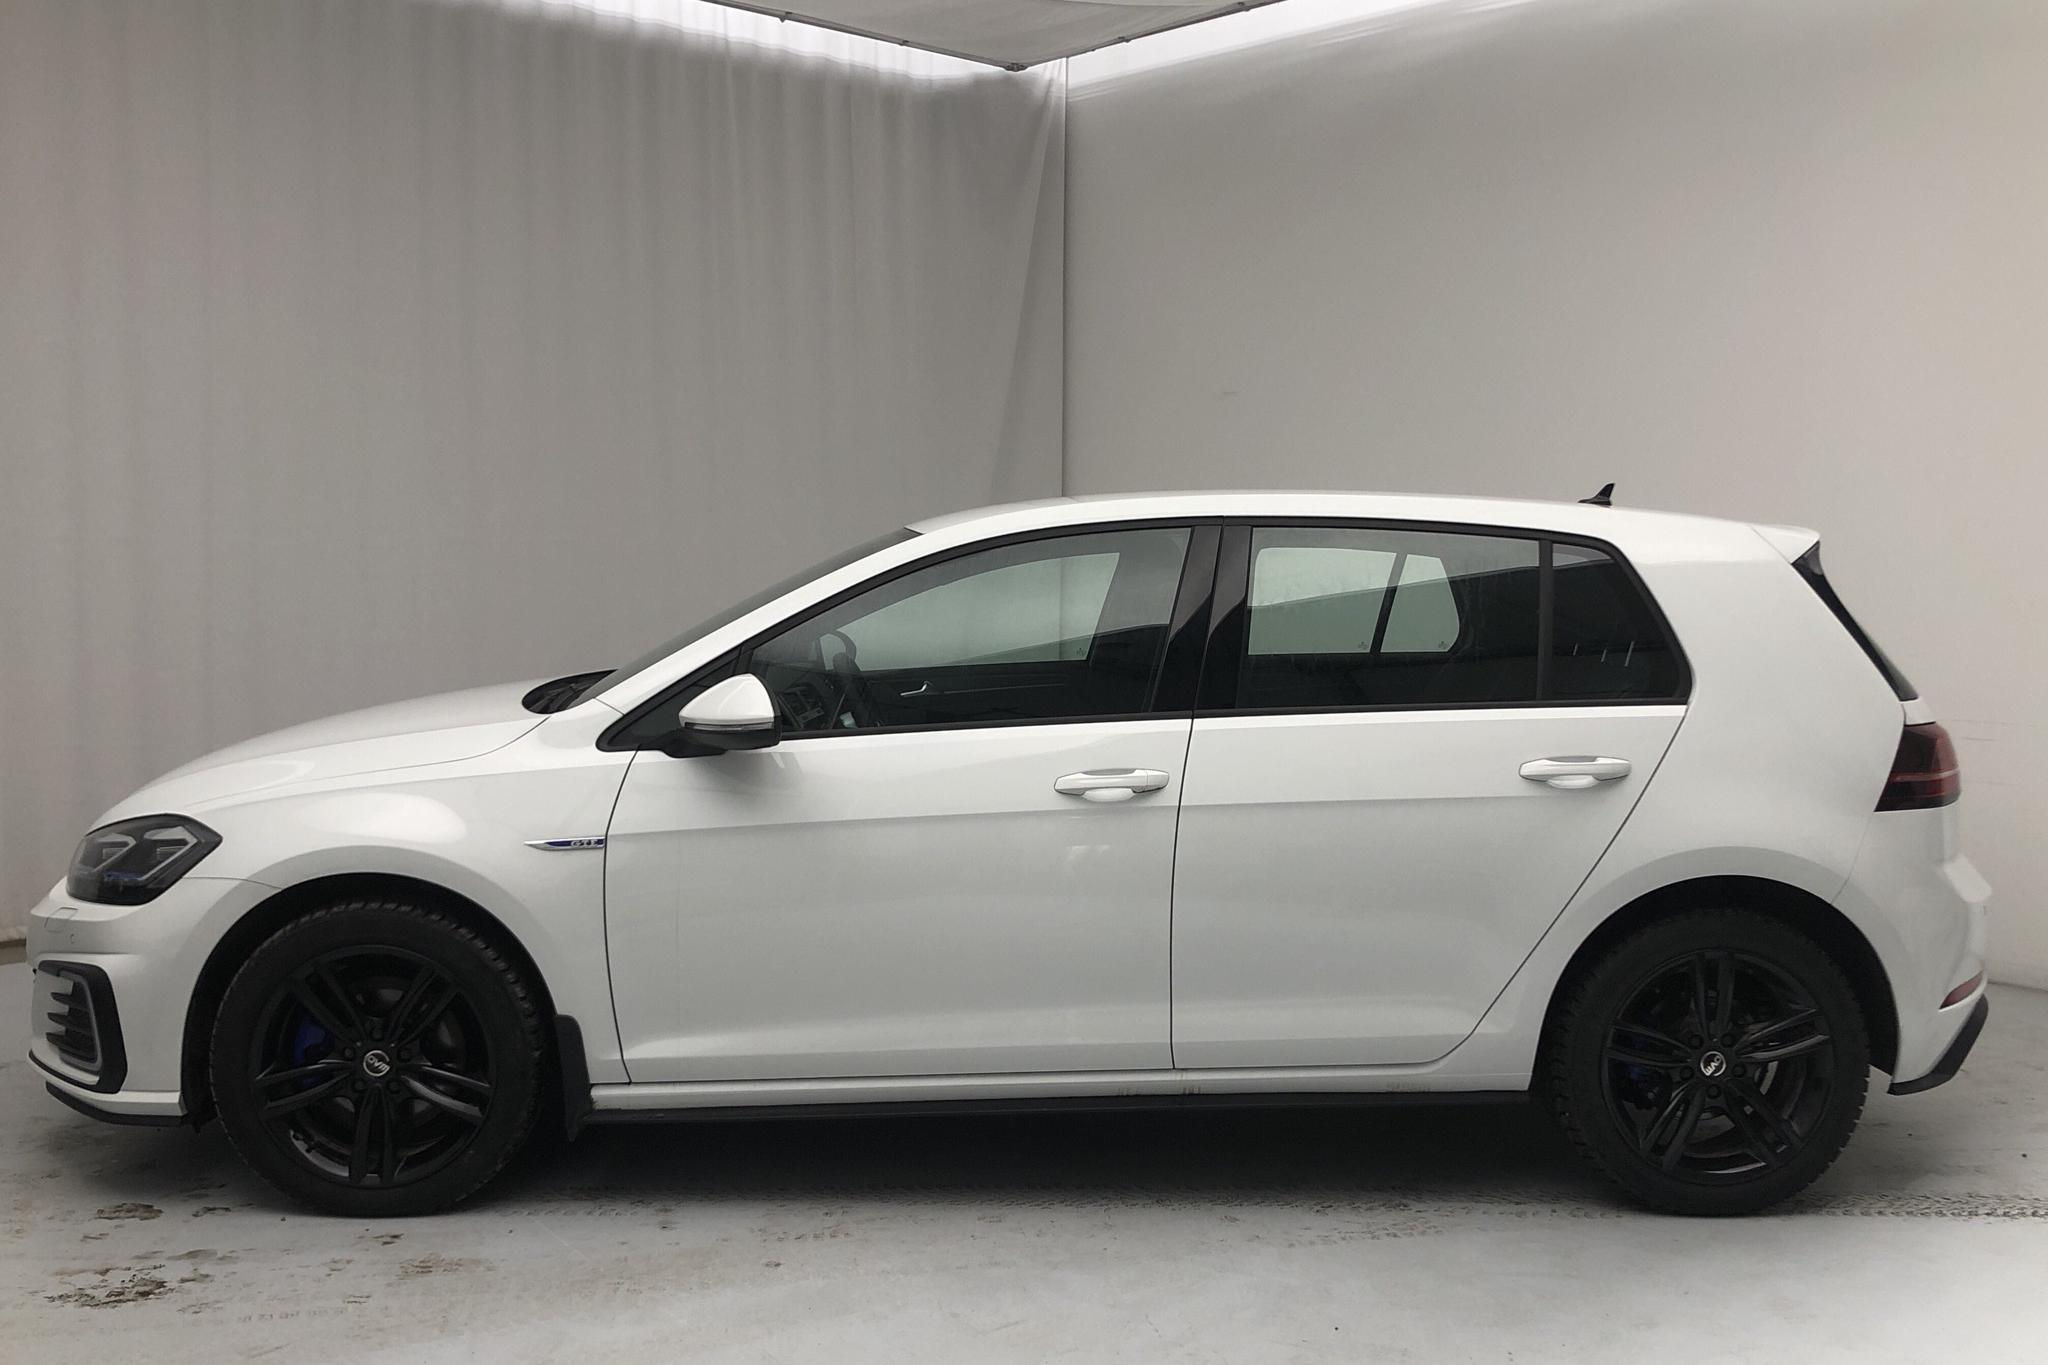 VW Golf VII GTE 5dr (204hk) - 28 970 km - Automatic - white - 2020